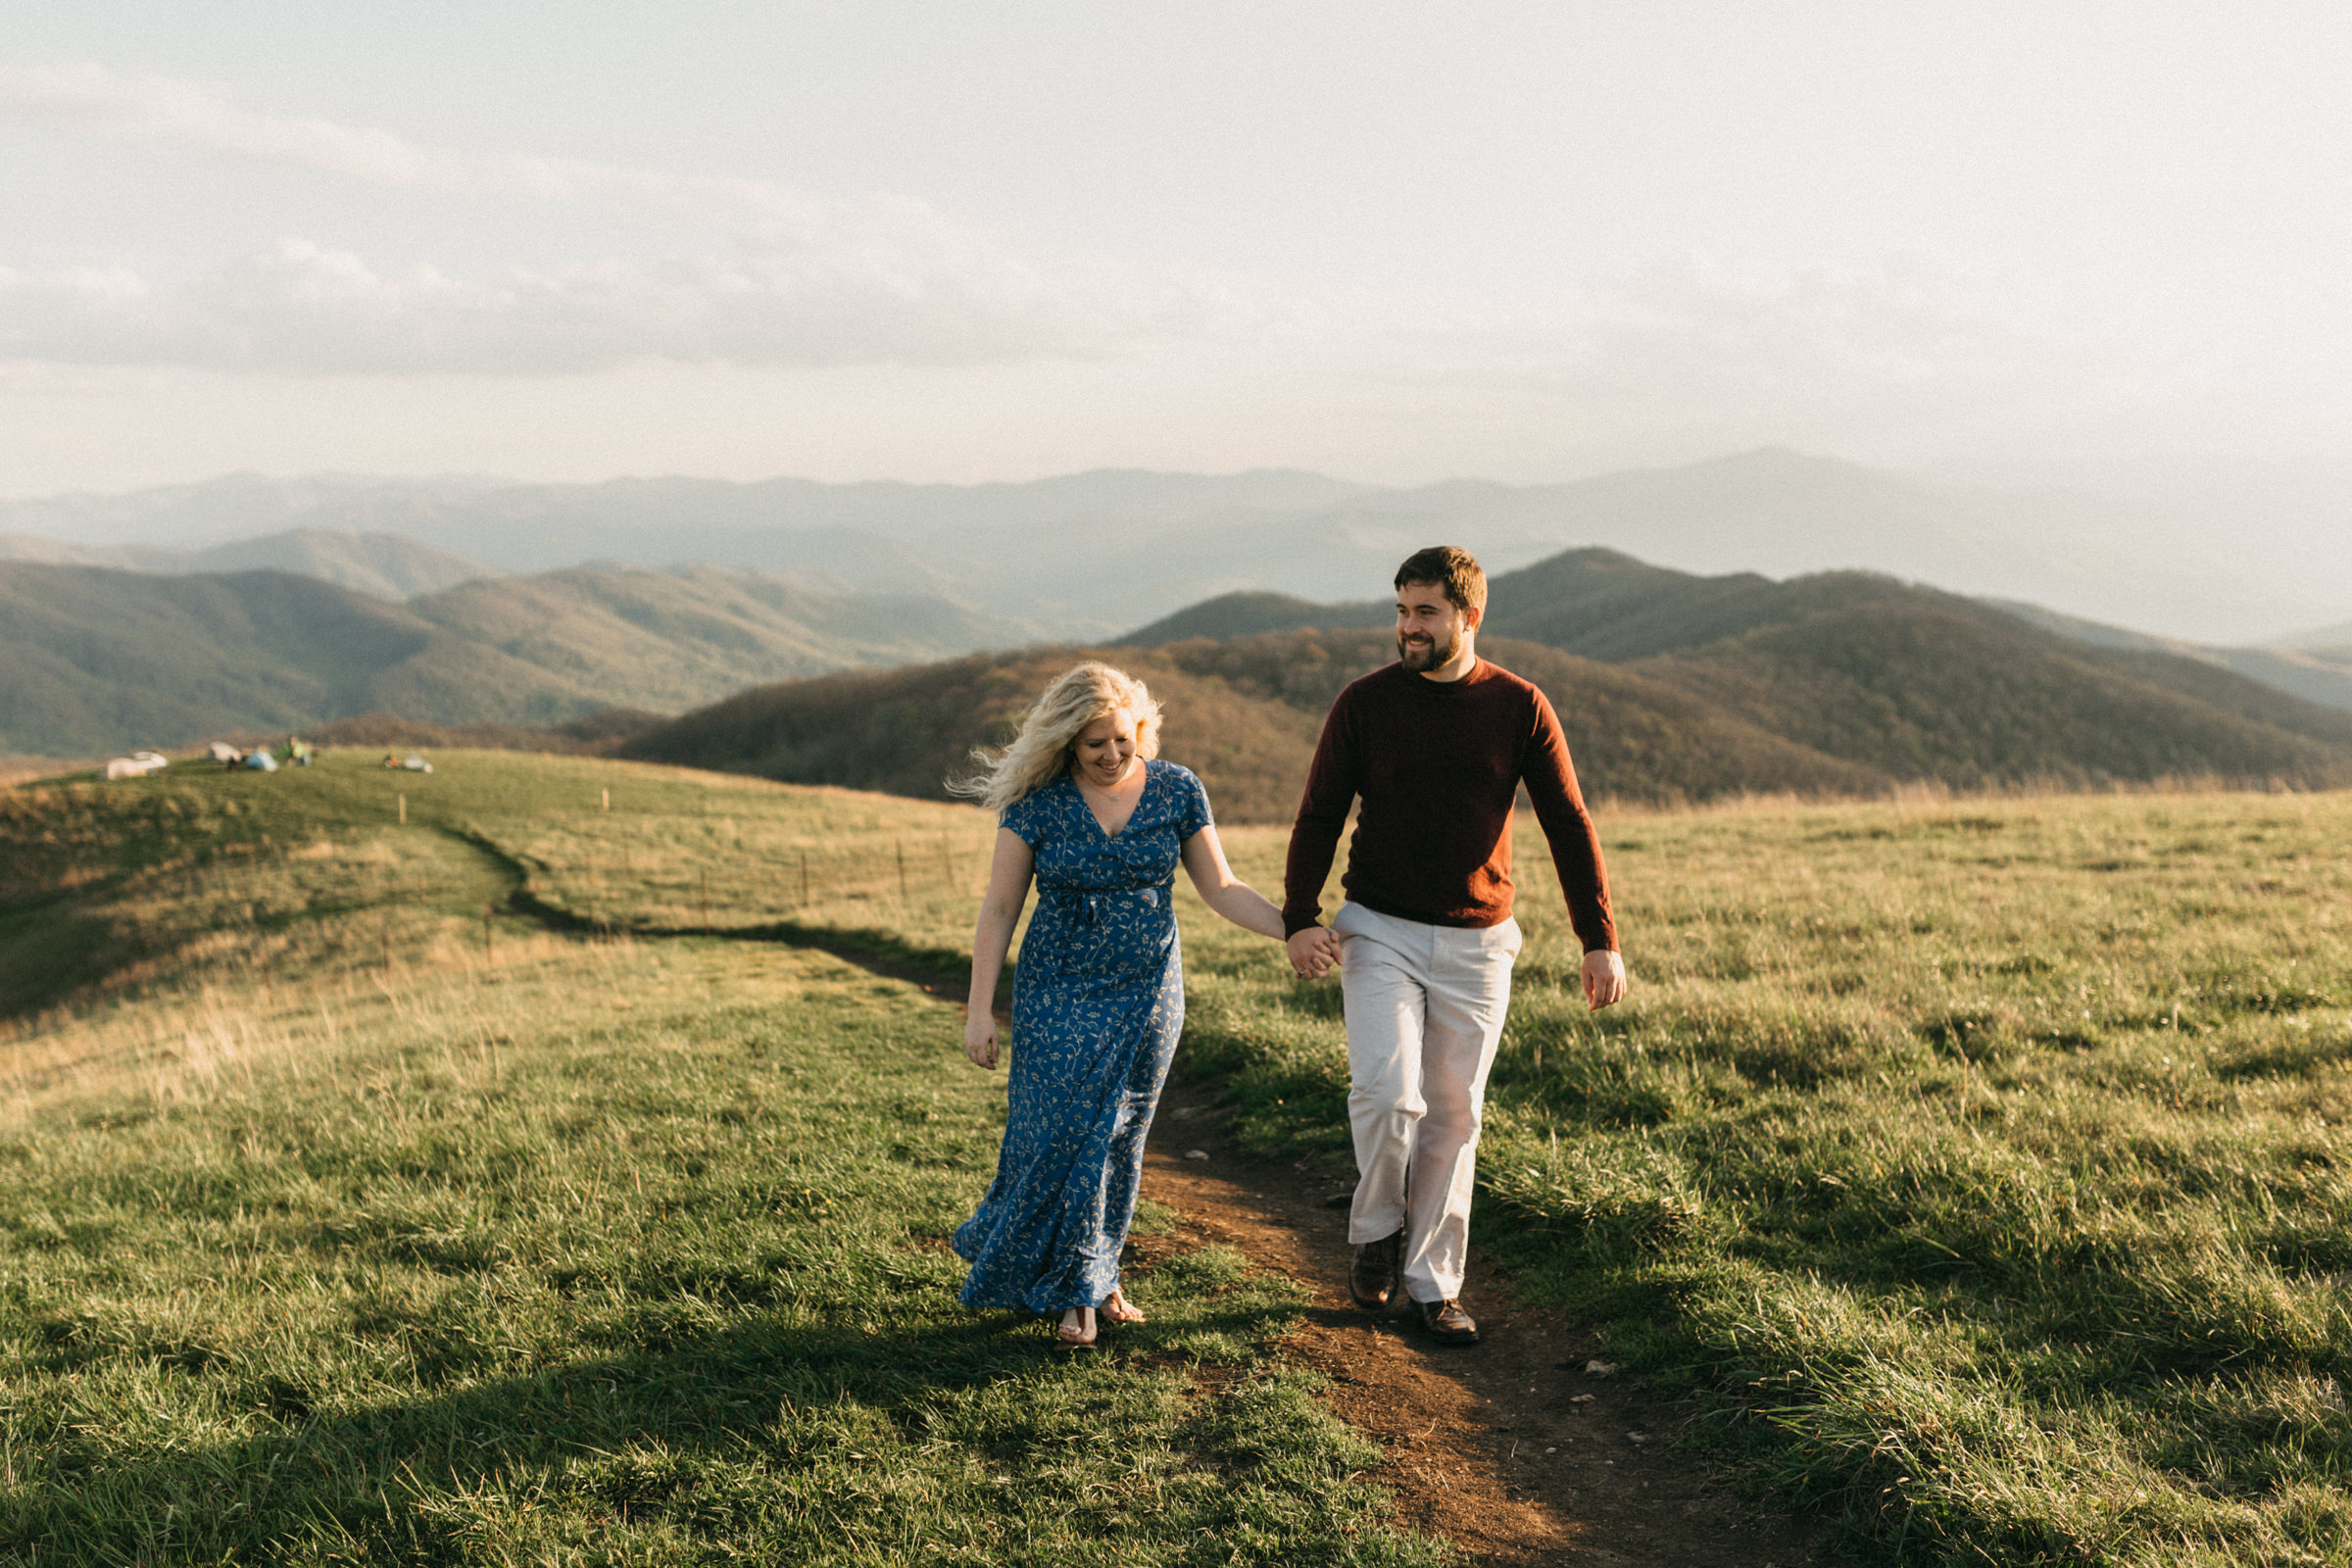 Bride and groom in the Blue Ridge Mountains during their candid, authentic engagement session.